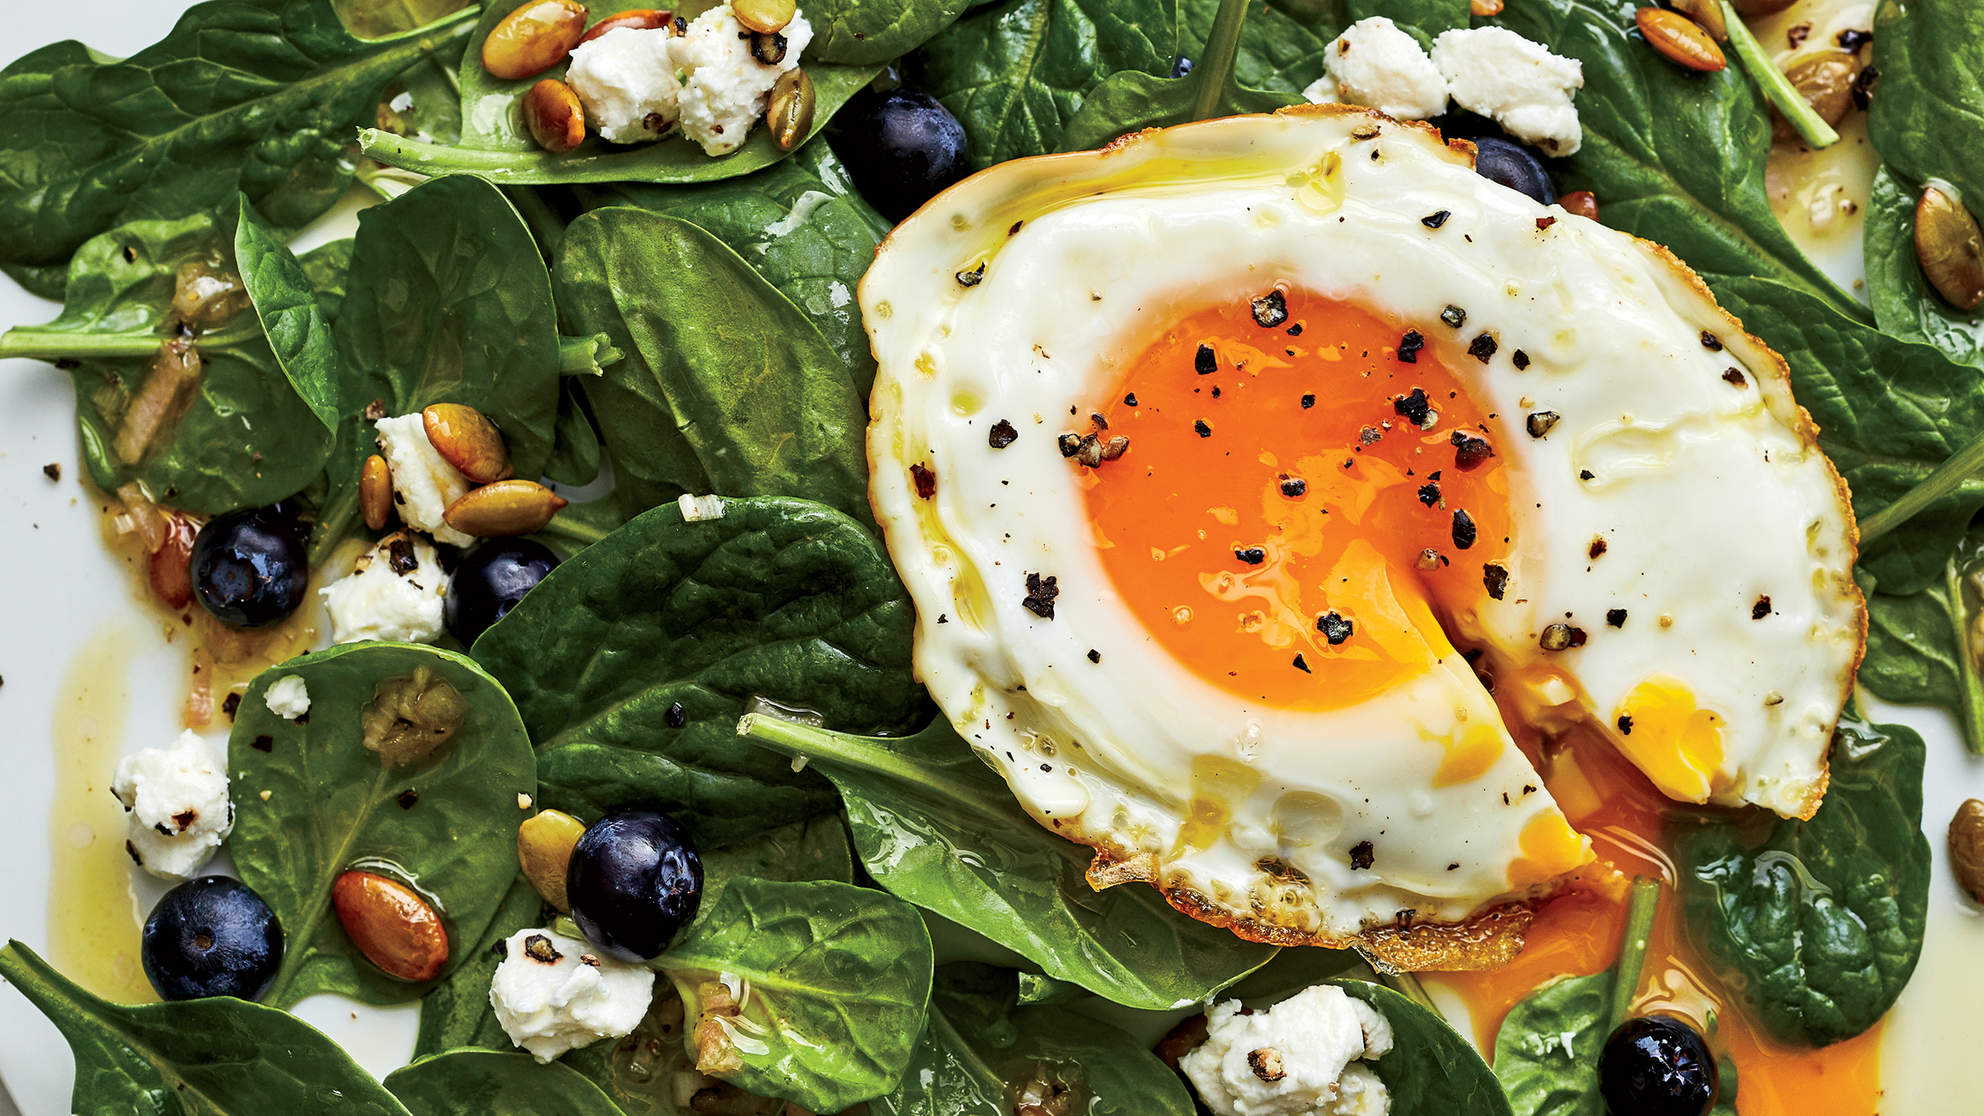 spinach-saladfried-egg-goat-cheese-power-up